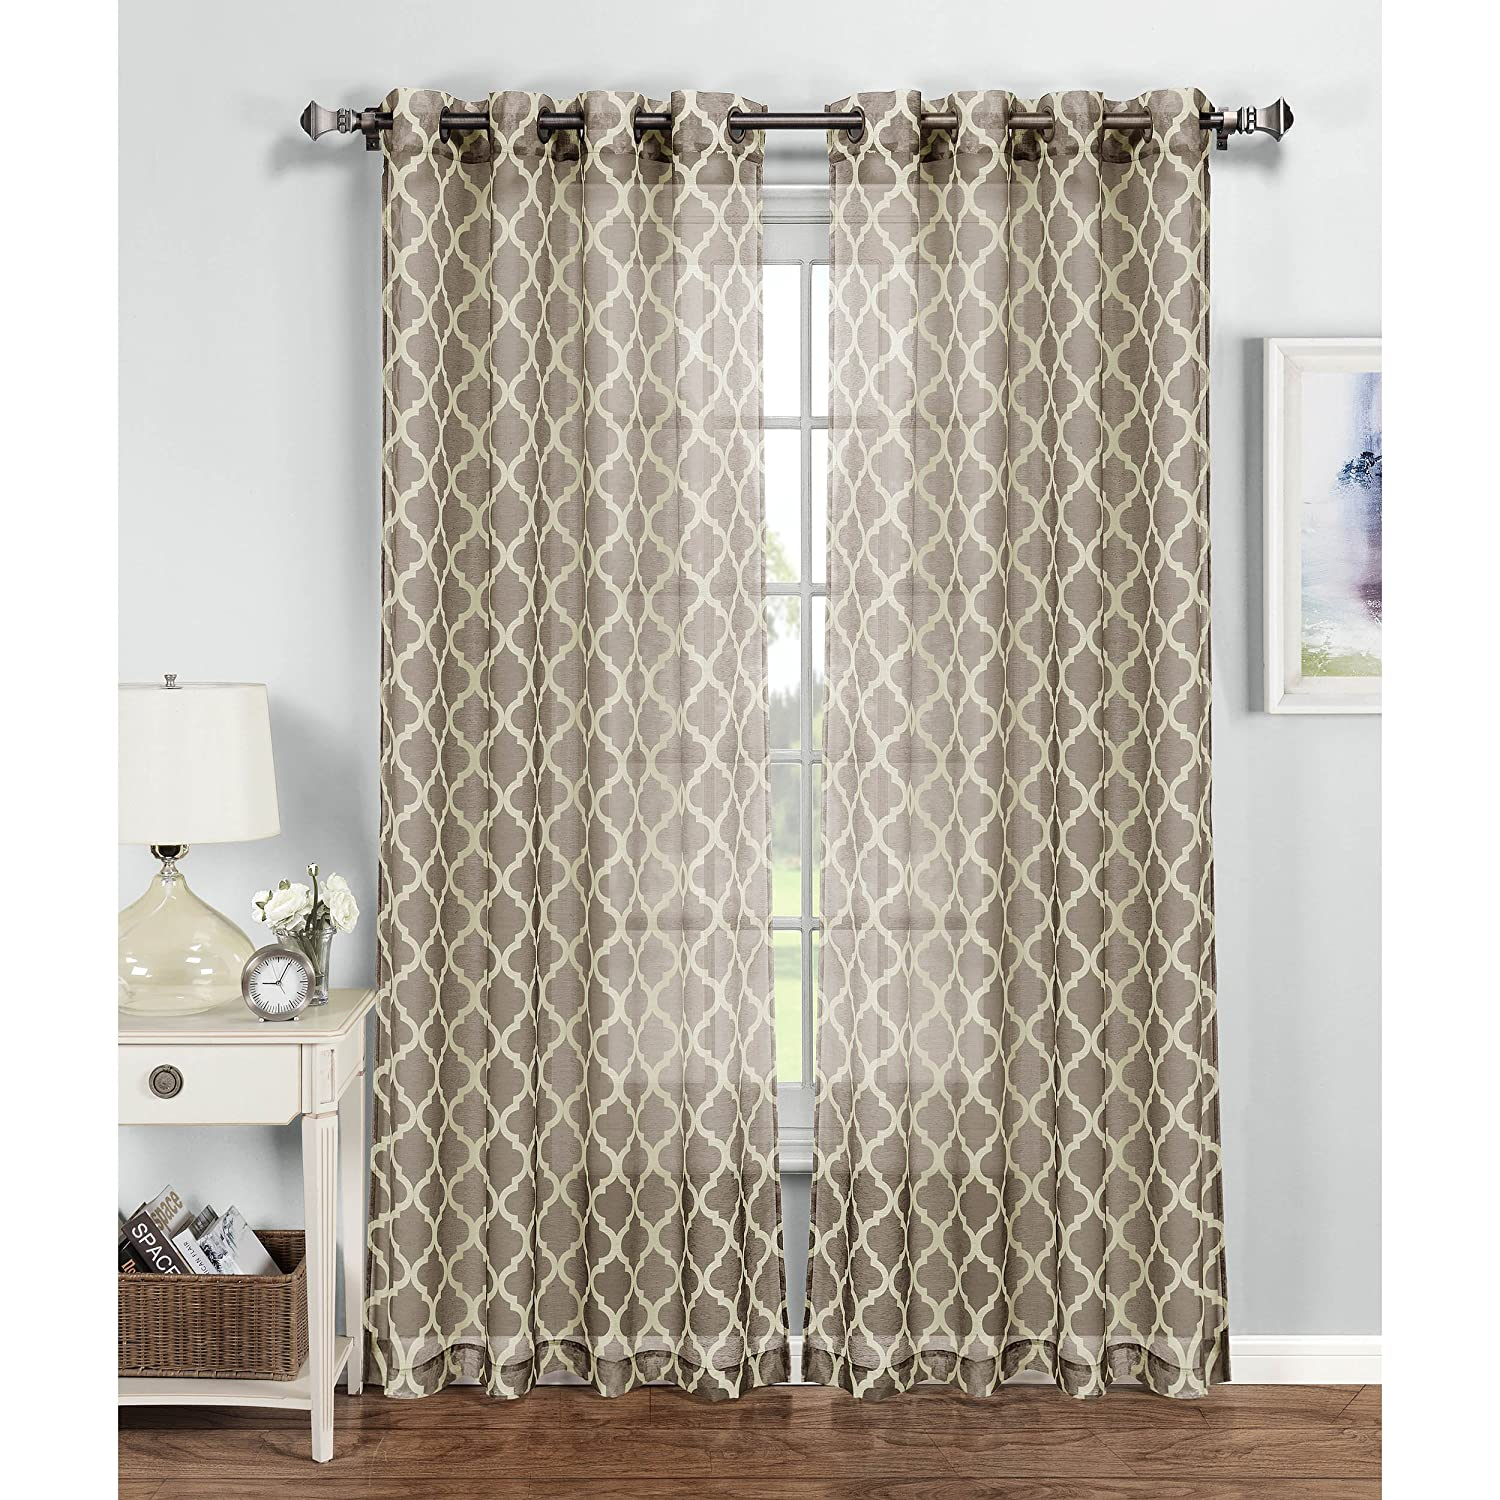 Sheer Curtain Panels Ease Bedding With Style